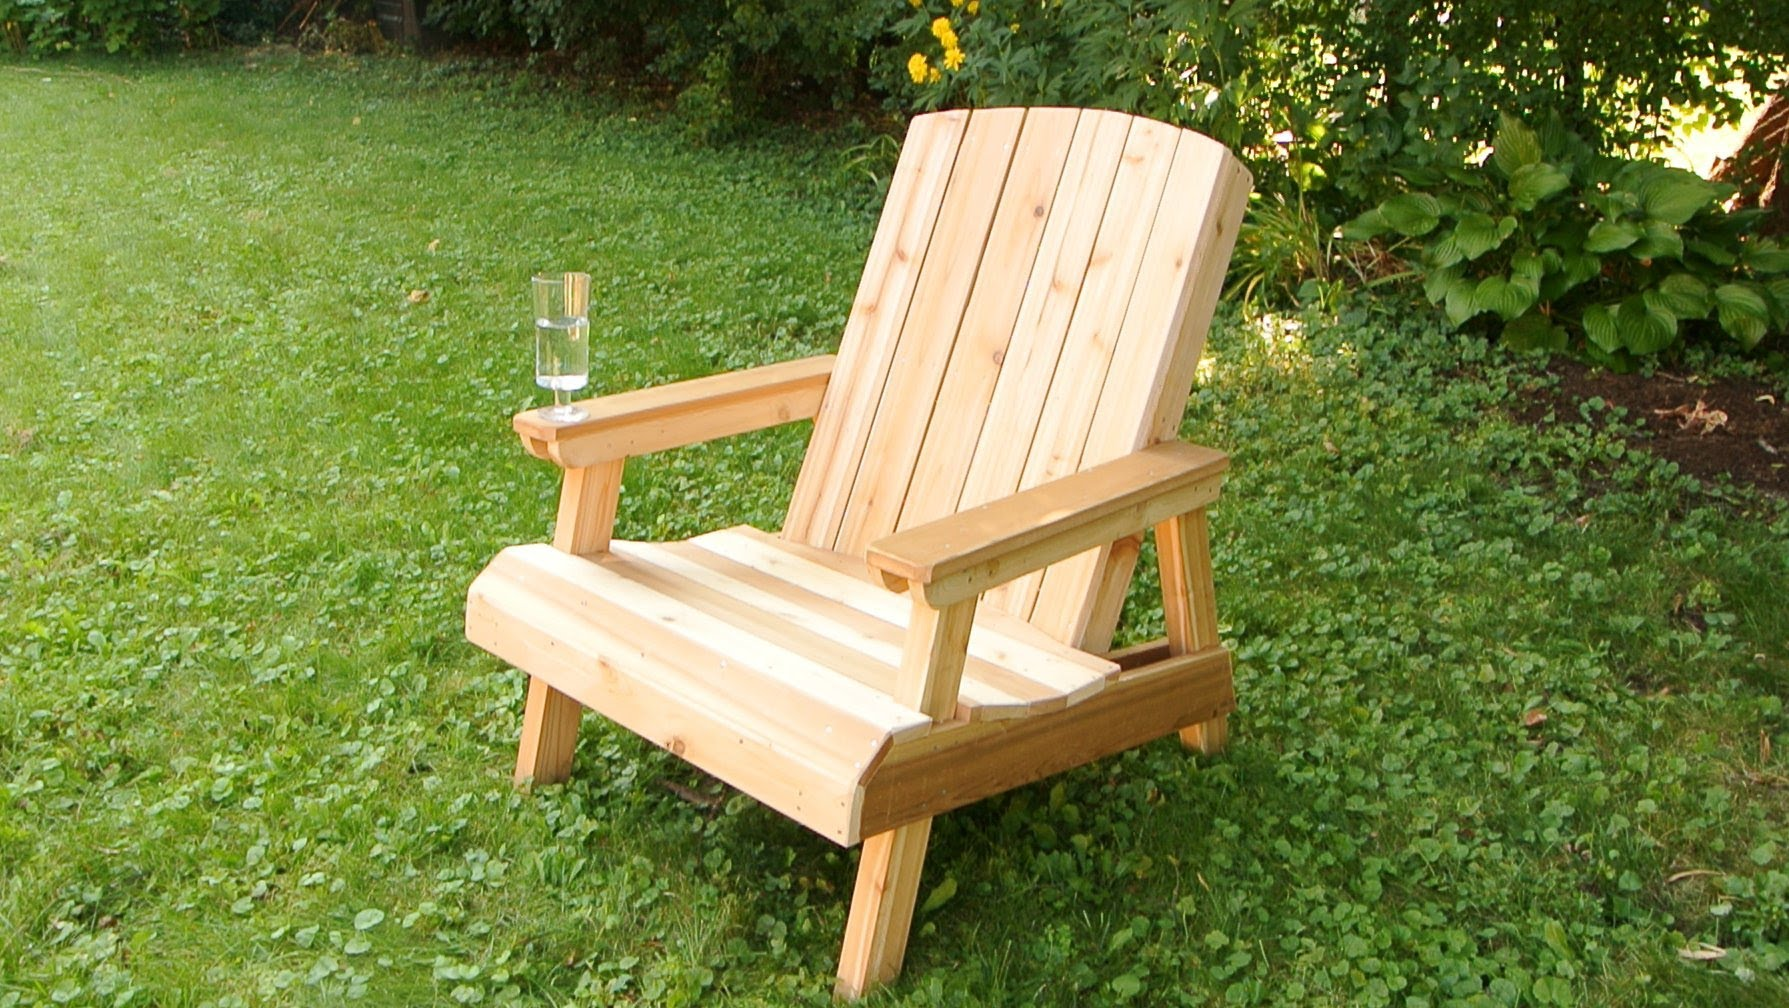 Building a garden chair (old adaptation) - youtube CNEGRAX